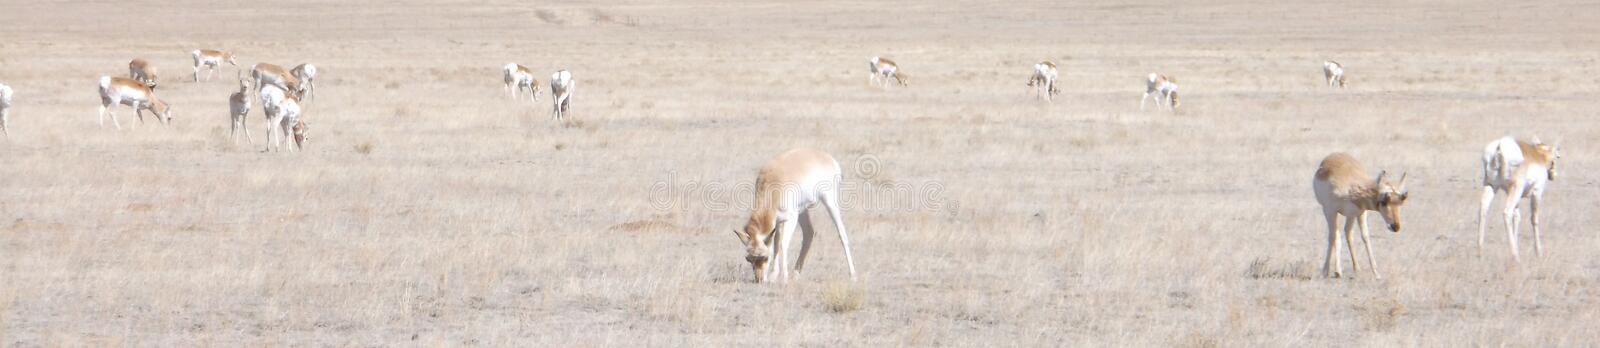 Pronghorn on South Park royalty free stock image